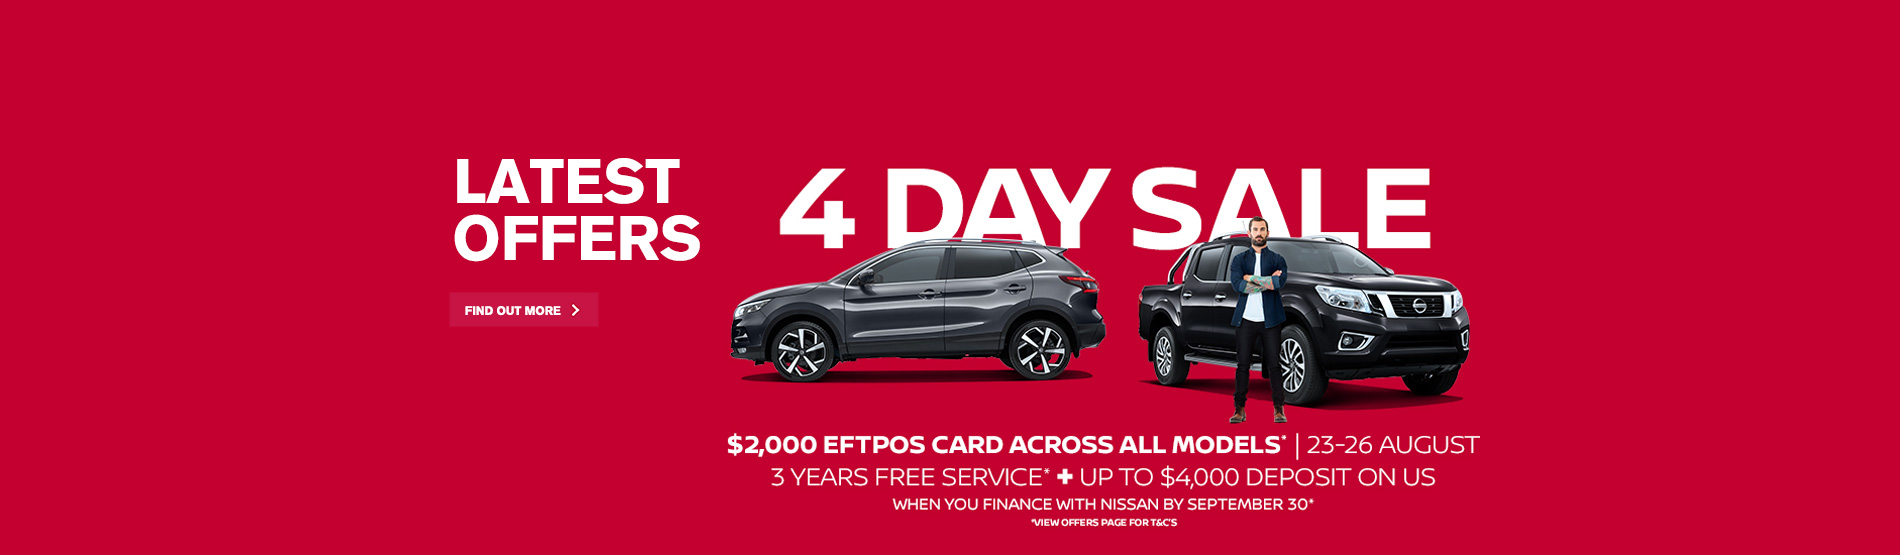 Nissan 4 Day Sale